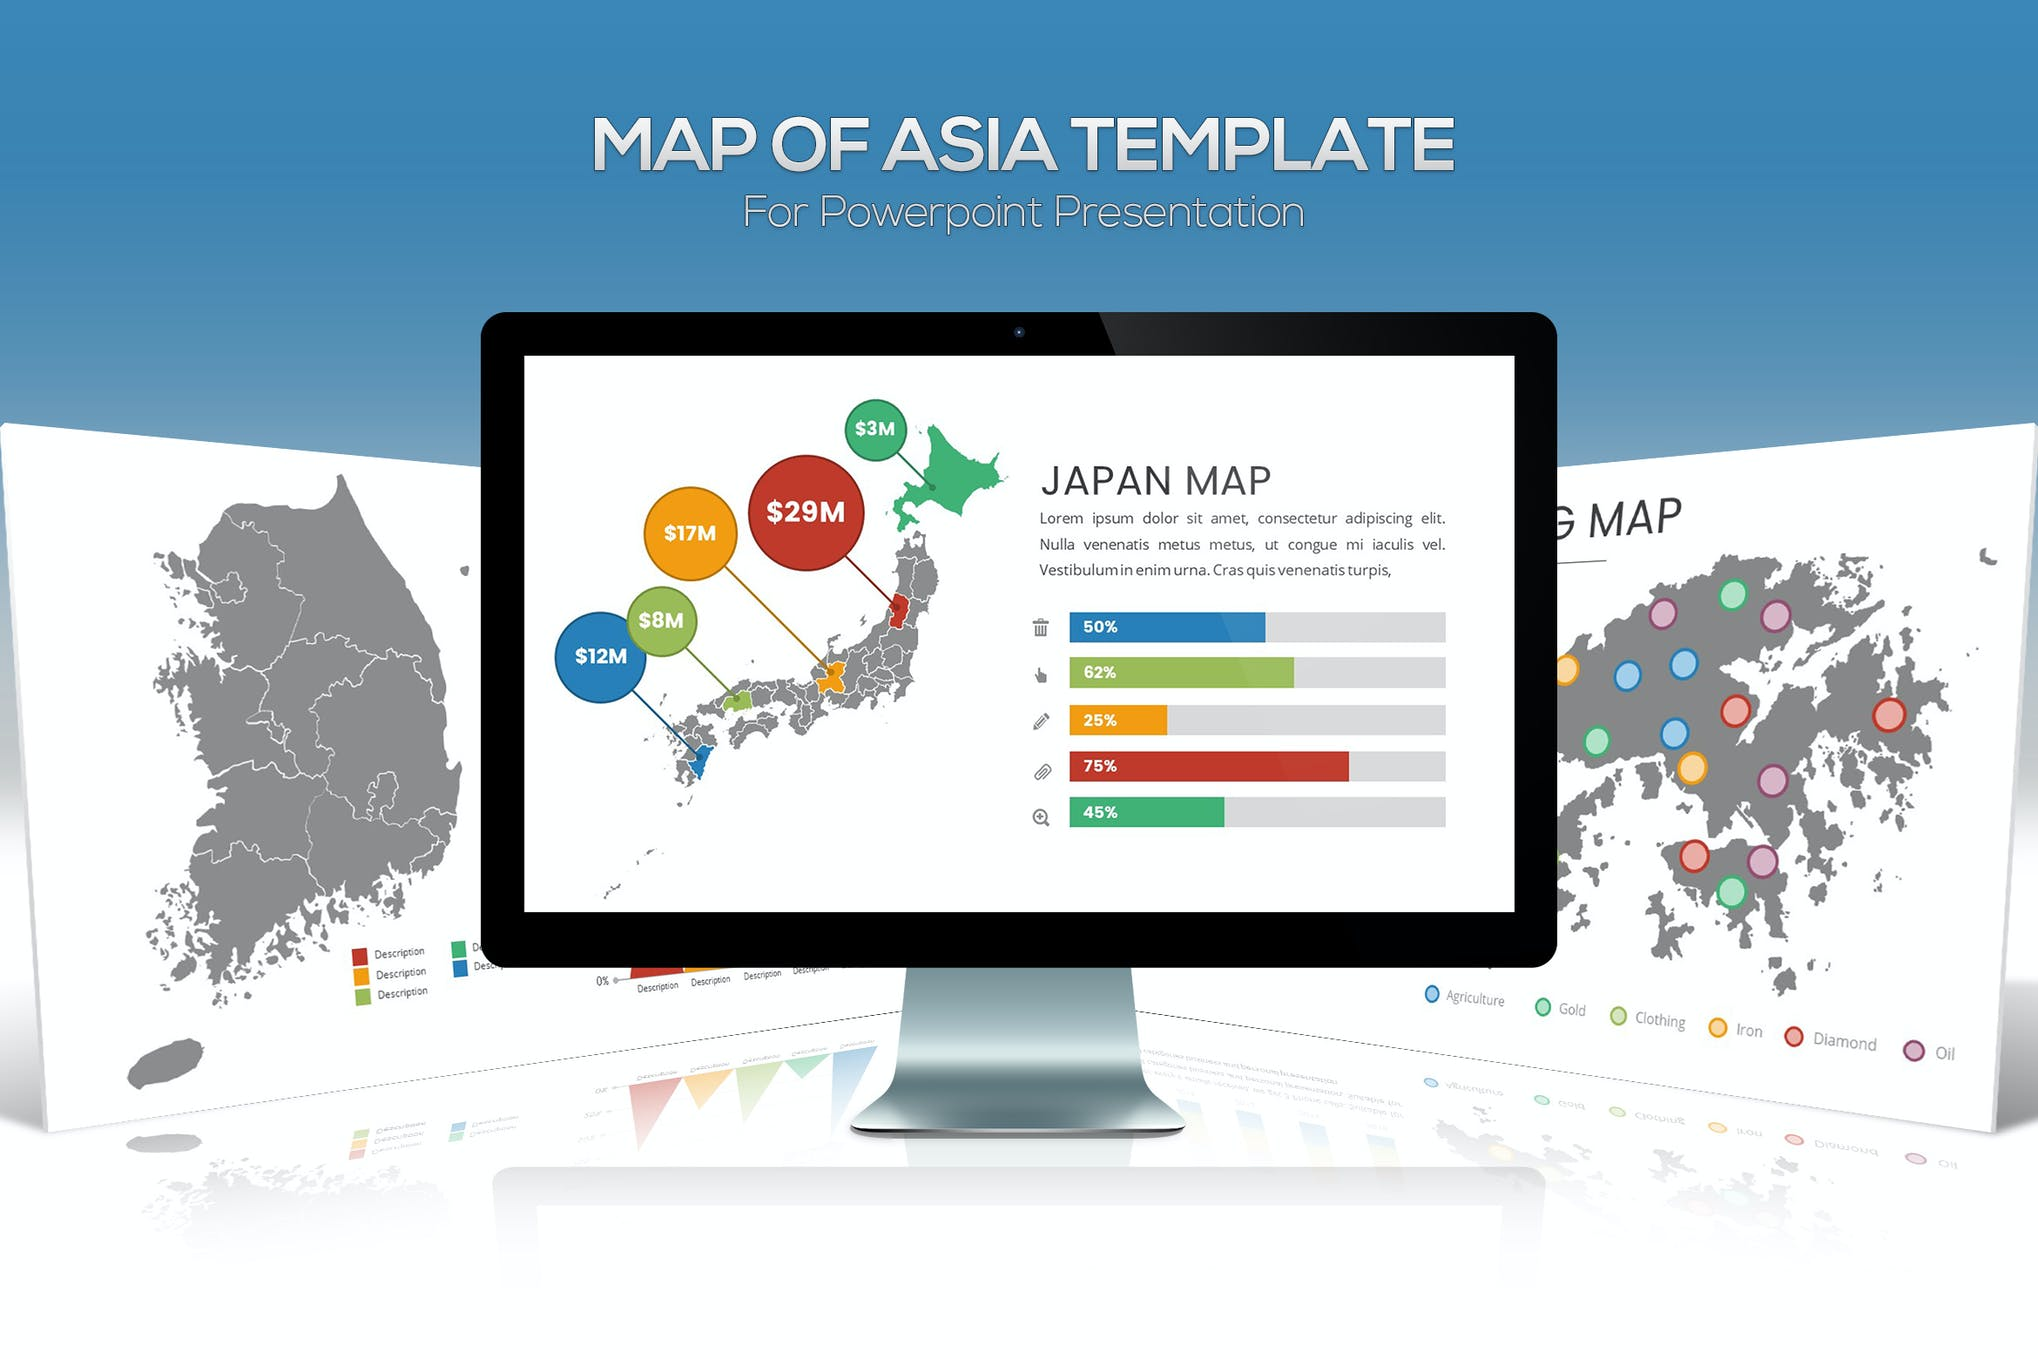 Asia Maps for Powerpoint Presentation by SlideFactory on ... Map For Powerpoint Presentation on create maps for presentations, maps for speeches, make maps for presentations, maps for marketing, us maps for presentations, business cartoons for presentations, maps for writing, maps for first grade, clip art presentations, maps for email, maps for home, maps for brochures, editable maps for presentations, maps for games, maps for reports, maps for projects, maps for ppt, maps for books, world map for presentations, maps for invitations,